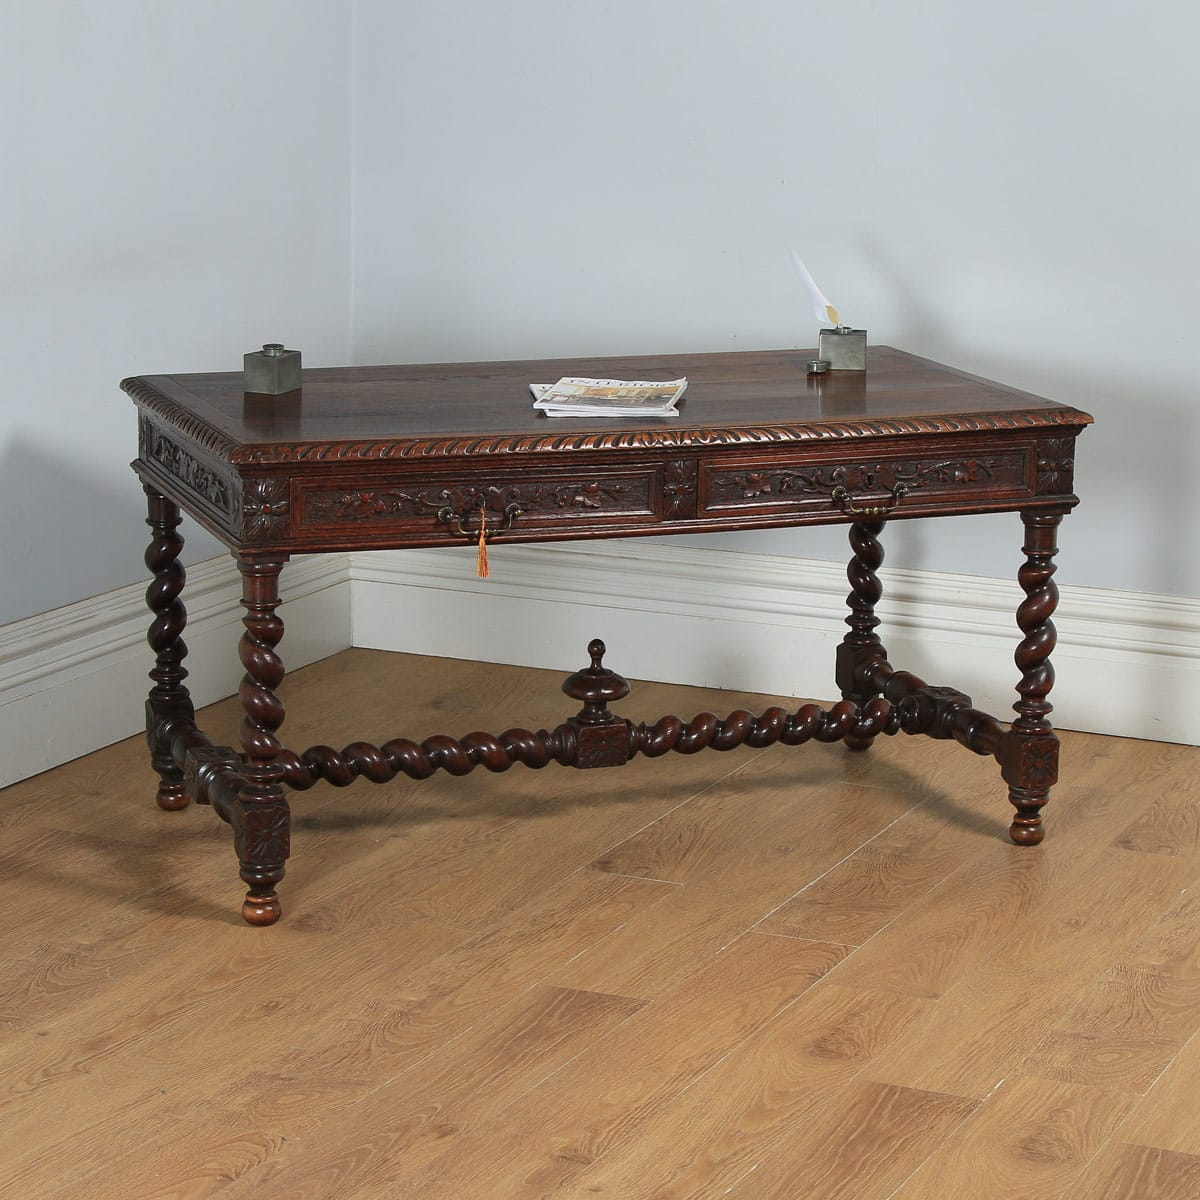 Sensational Antique French Provincial Carved Green Man Oak Library Desk Writing Table Circa 1870 Download Free Architecture Designs Scobabritishbridgeorg